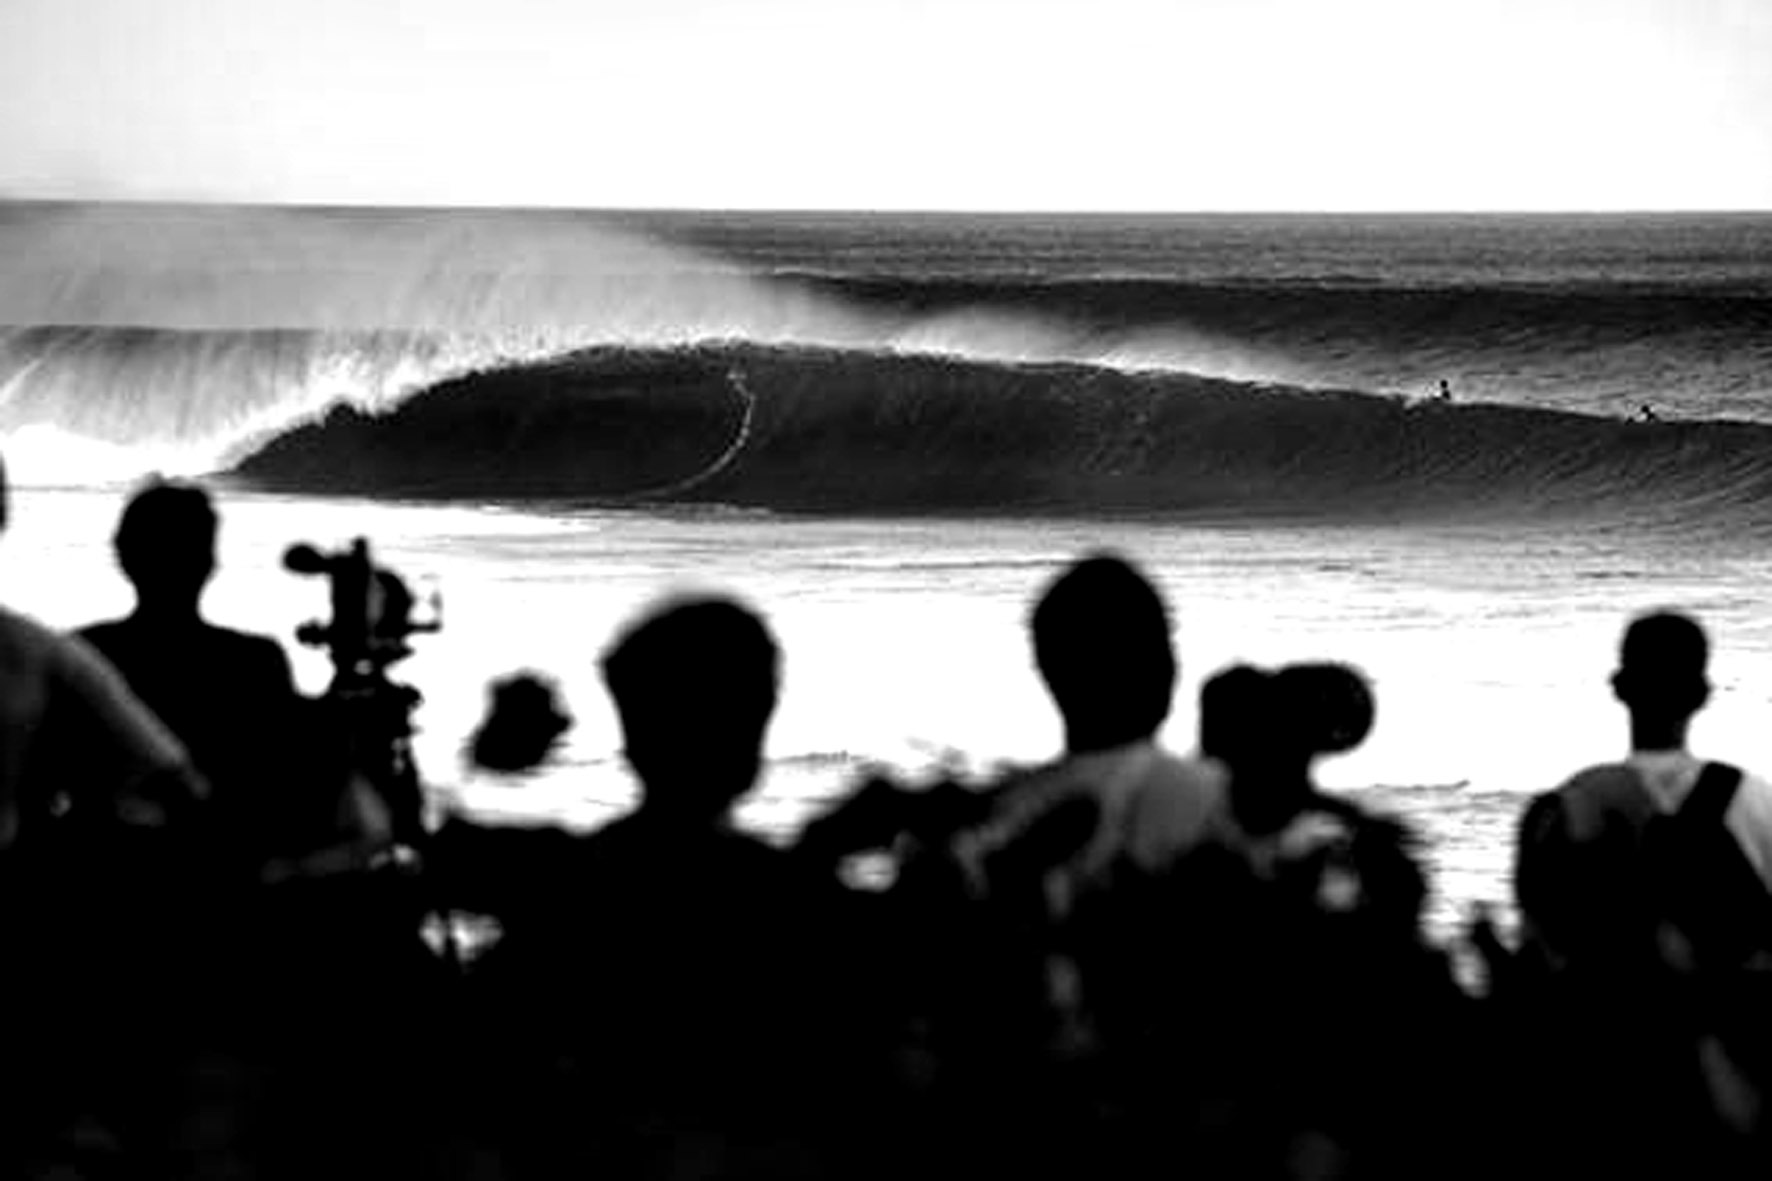 cfe758ab79f869 The Banzai Pipeline in all its glory awaits the world s best surfers for  the 2011 Billabong Pipe Masters in honour of the late Andy Irons.